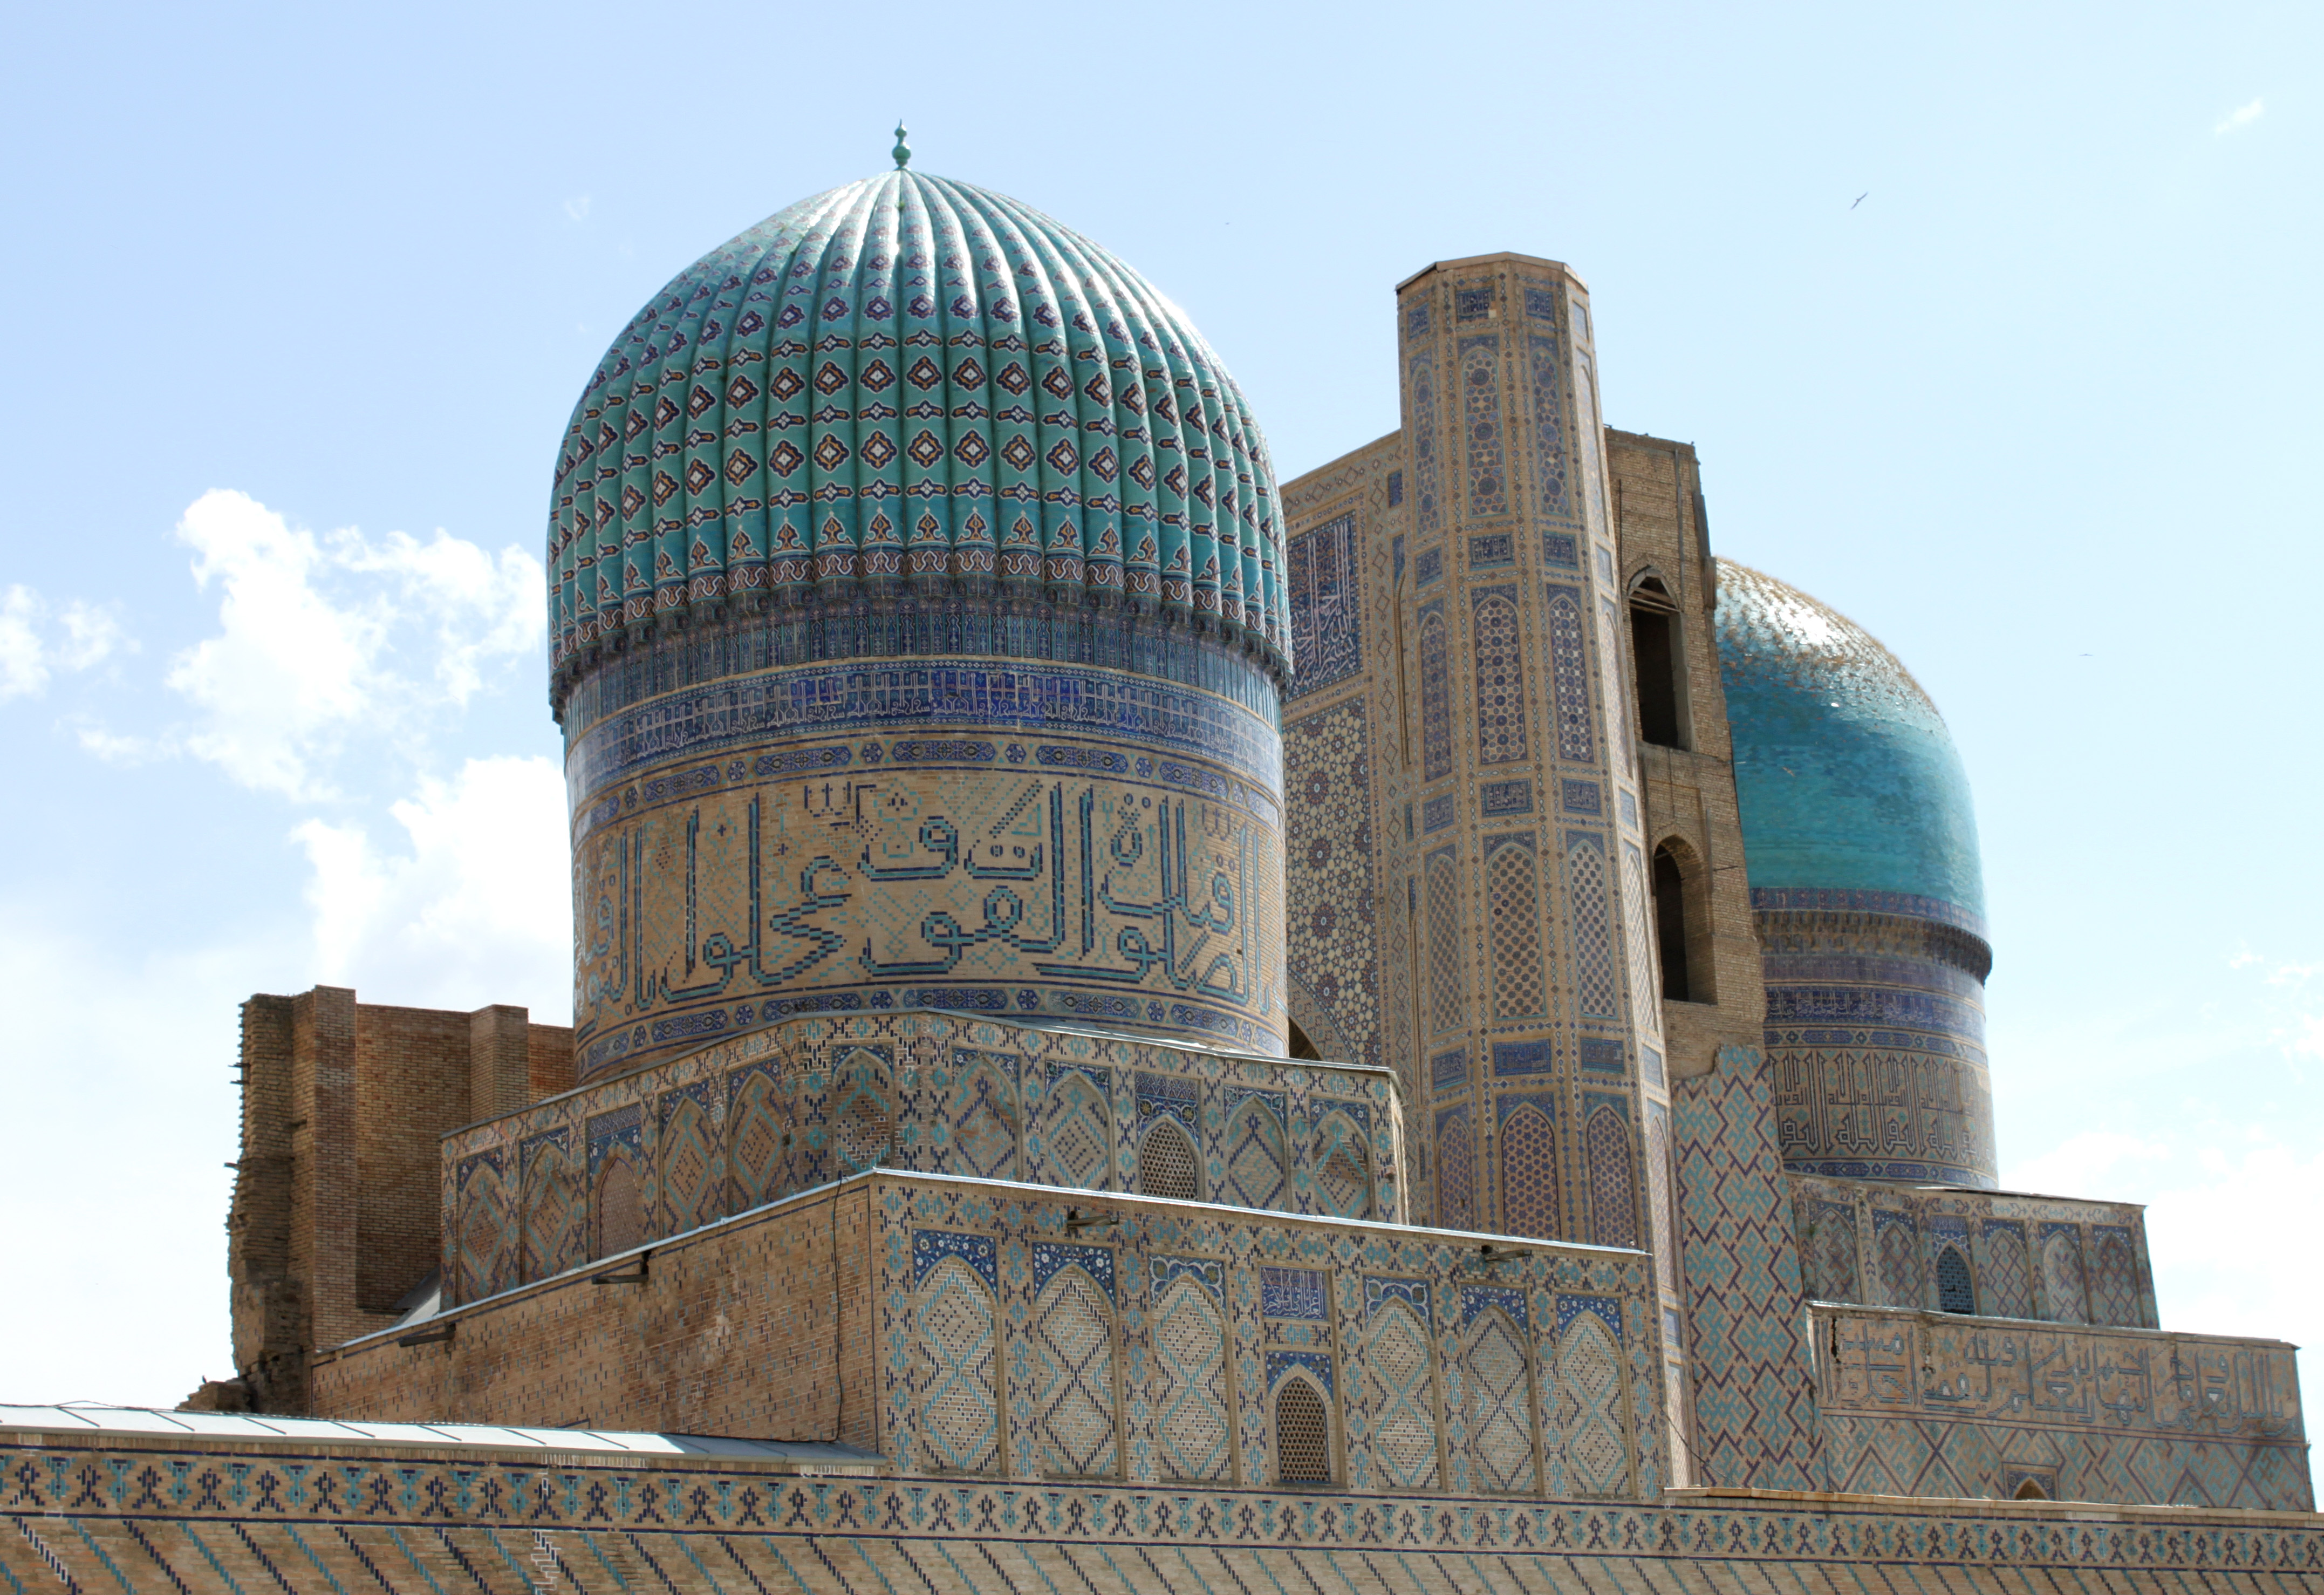 The most beautiful mosques to visit: View of the south side of Bibi Khanoum, Samarkand, Uzbekistan. Image source: Wikimedia Commons.